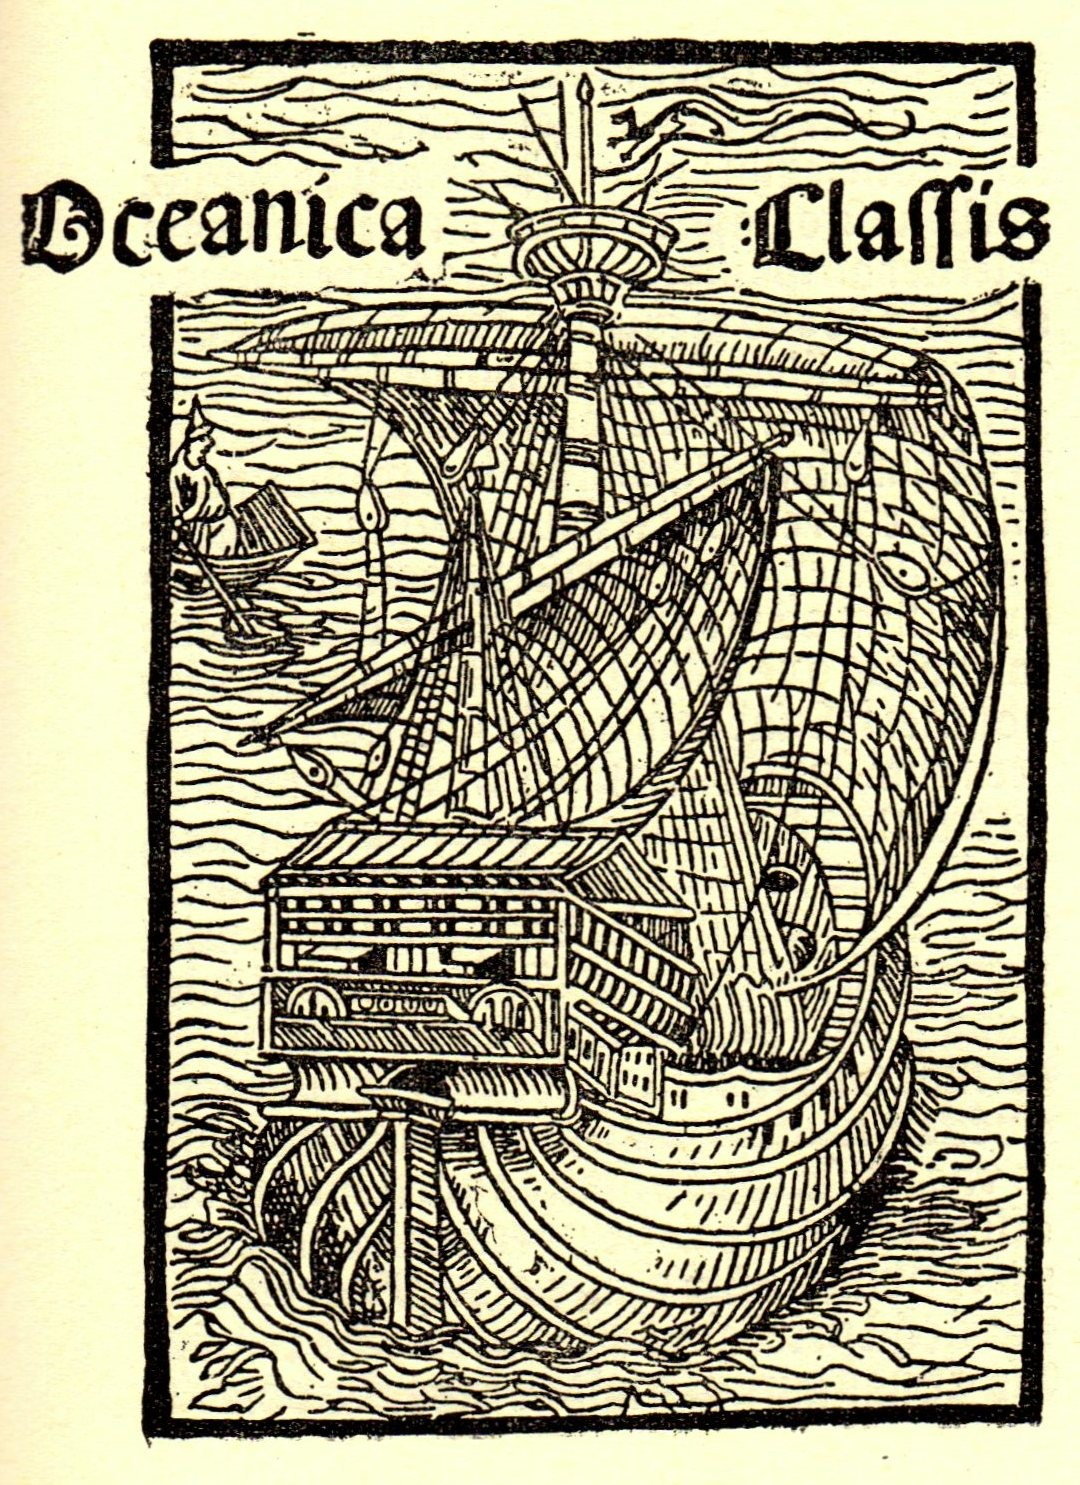 Christopher Columbus 1494 Lettera insulae inuensis Oceanica Classis